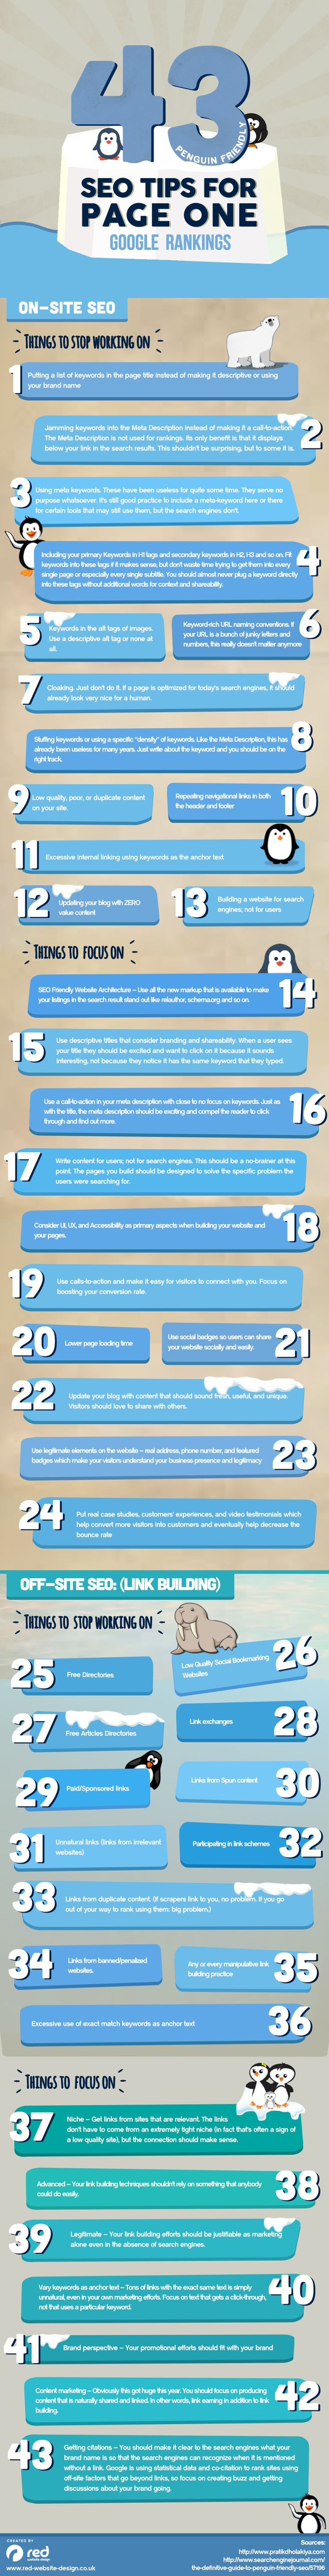 43 Penguin Friendly SEO Tips for Page One Google Rankings [#infographic] #searchmarketing #webdev